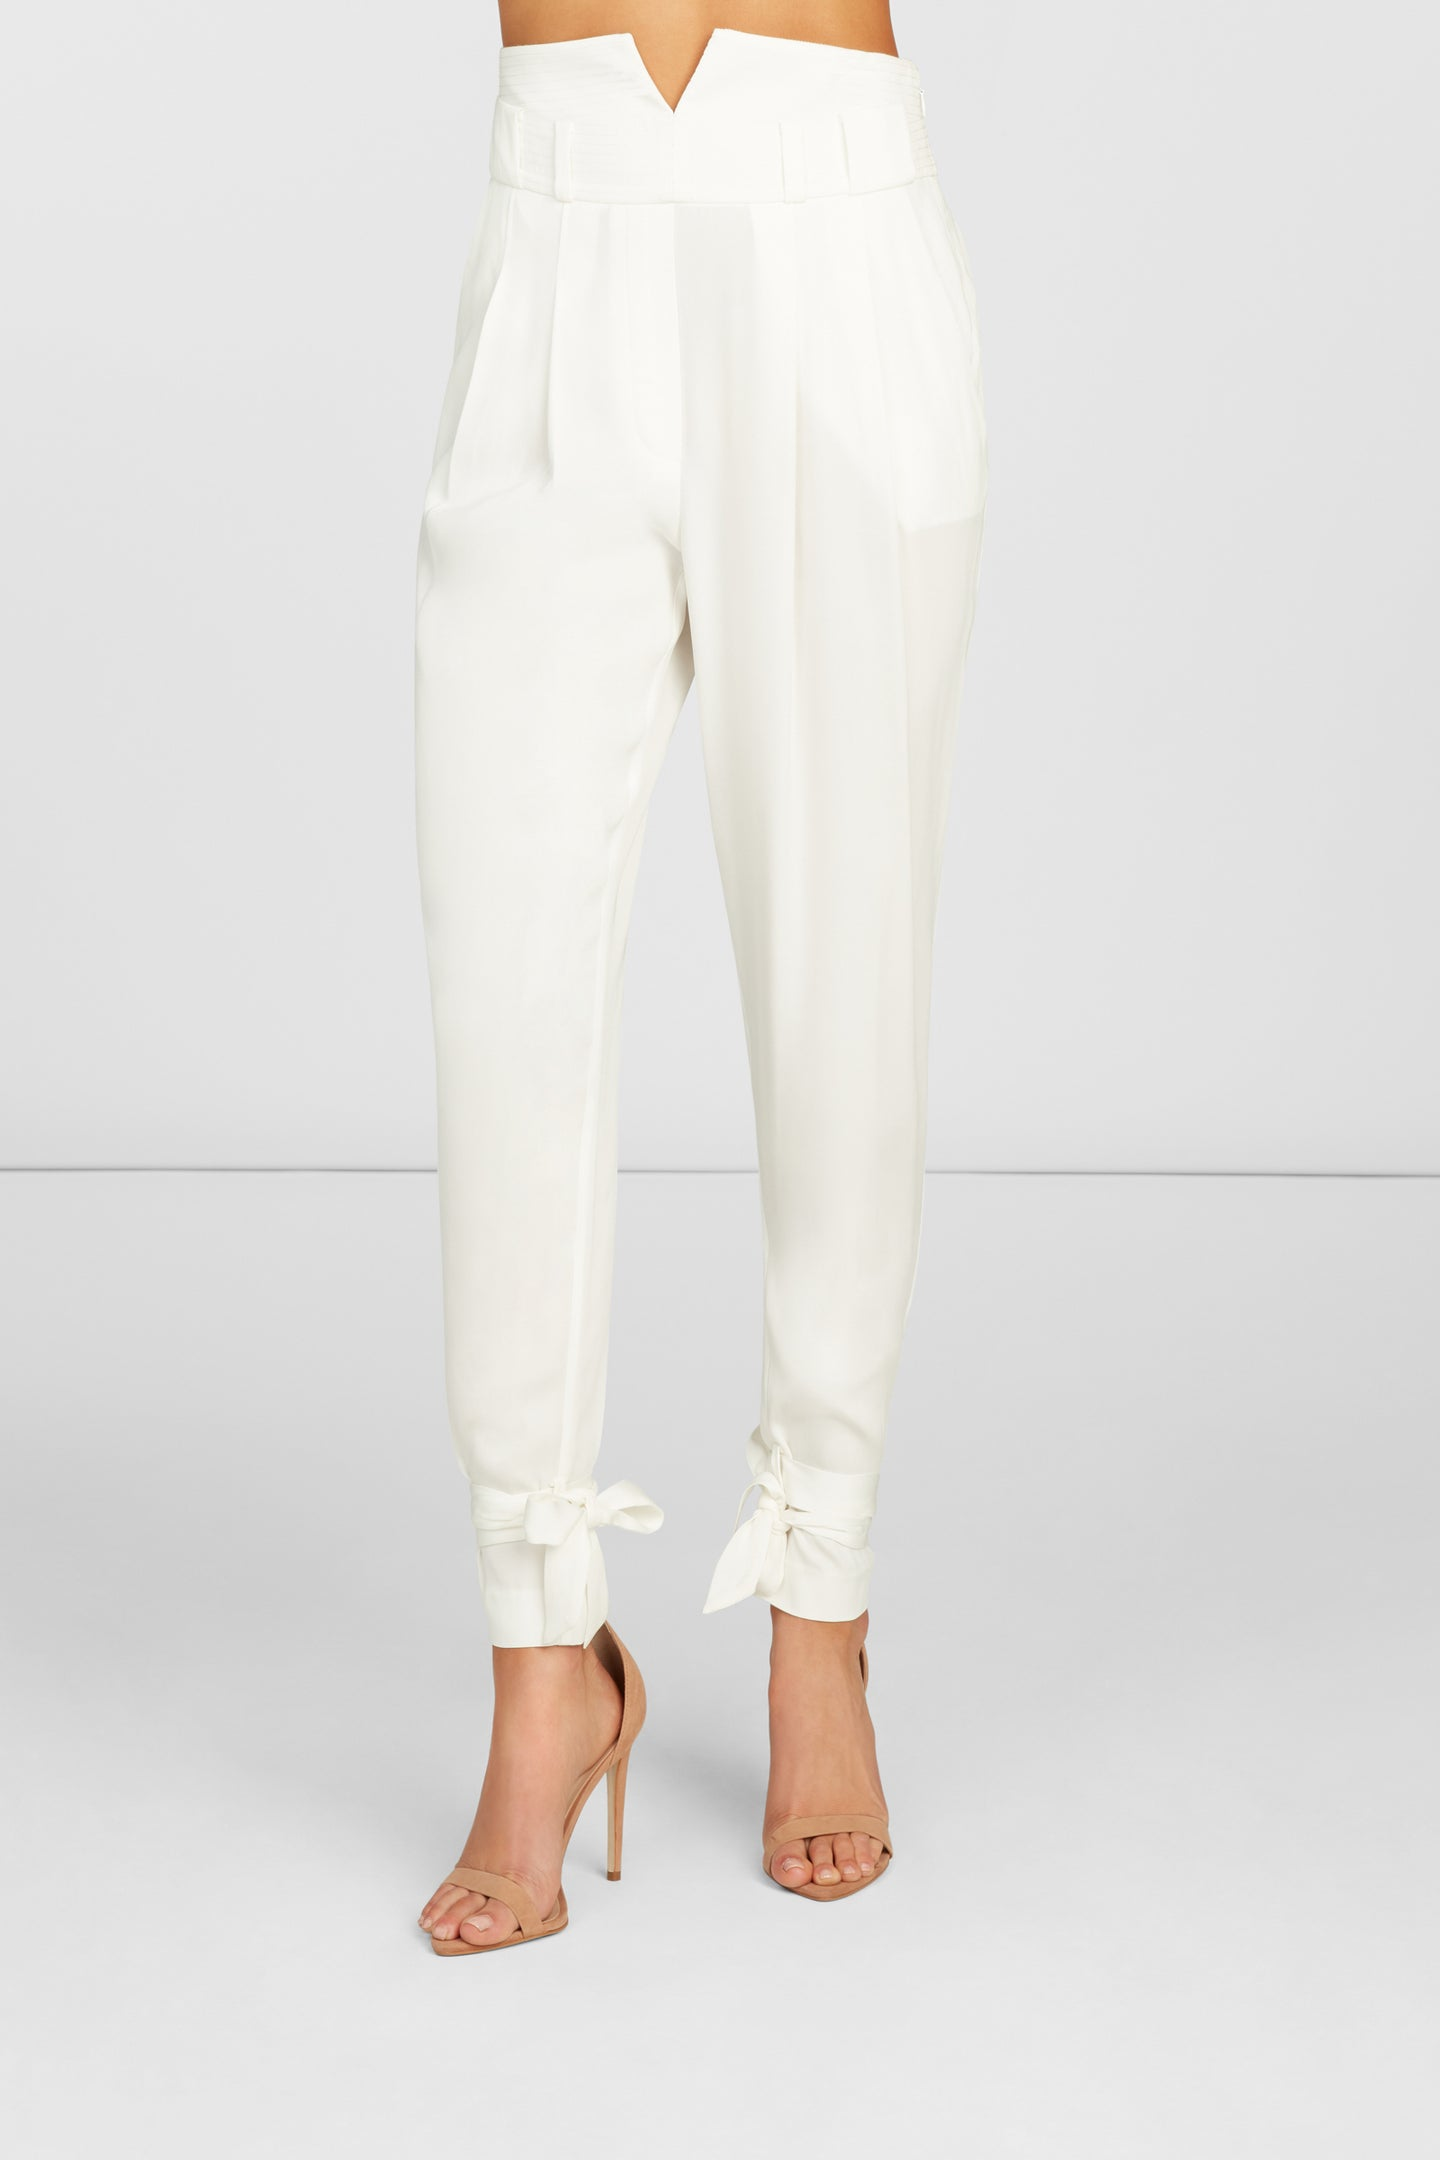 Aria High Waisted Skinny Pants in White Viscose Stretch with Ankle Ties